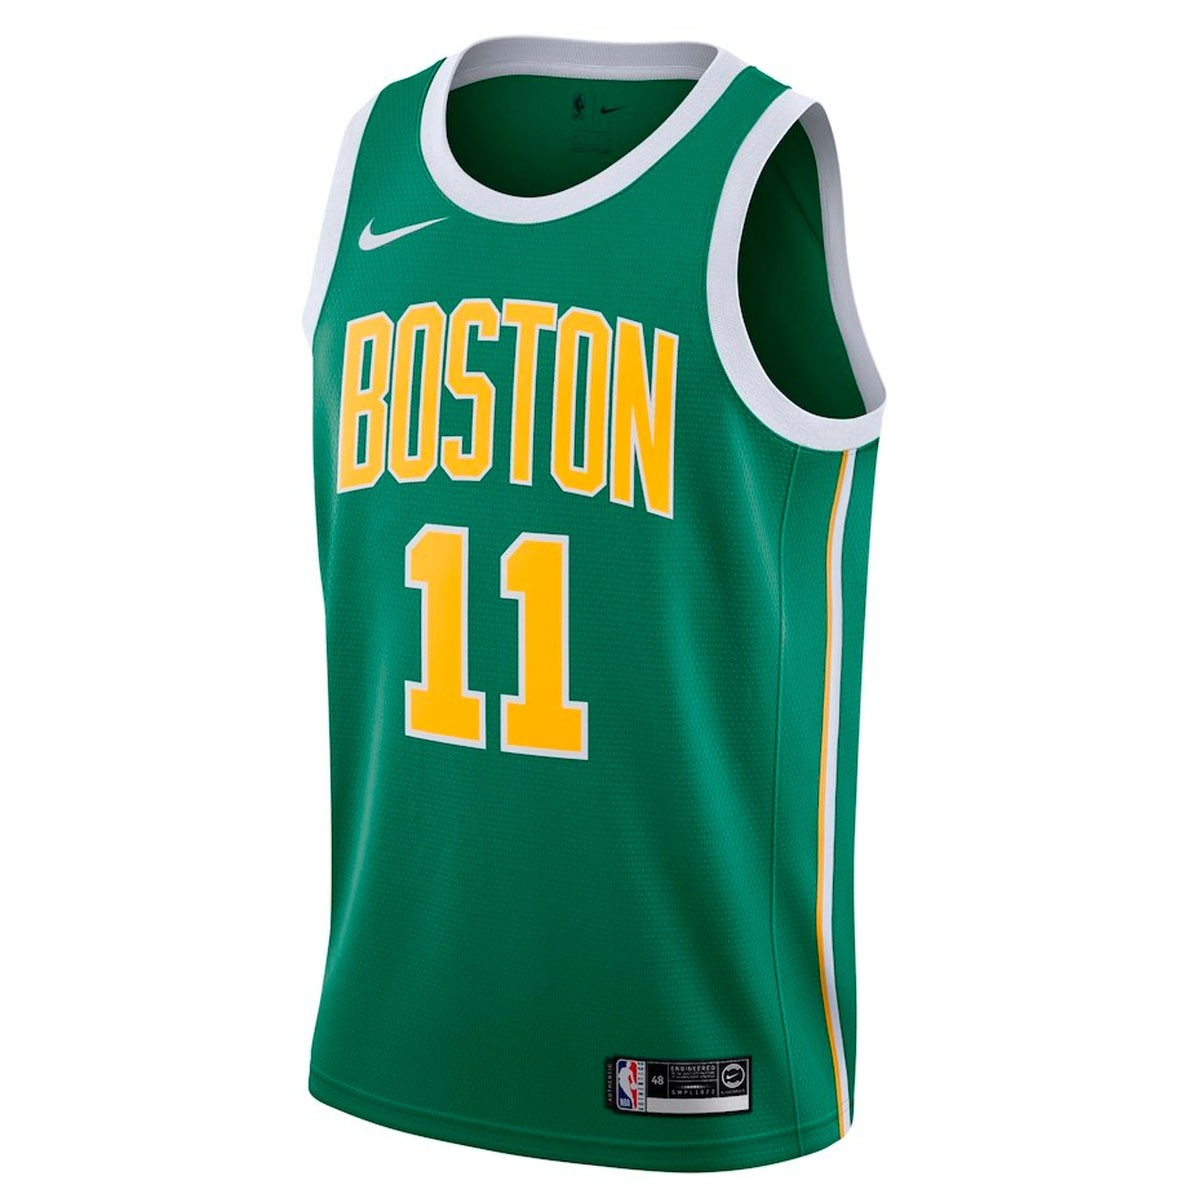 Nike Junior NBA Celtics Swingman Jersey Irving 'Earned Edition'